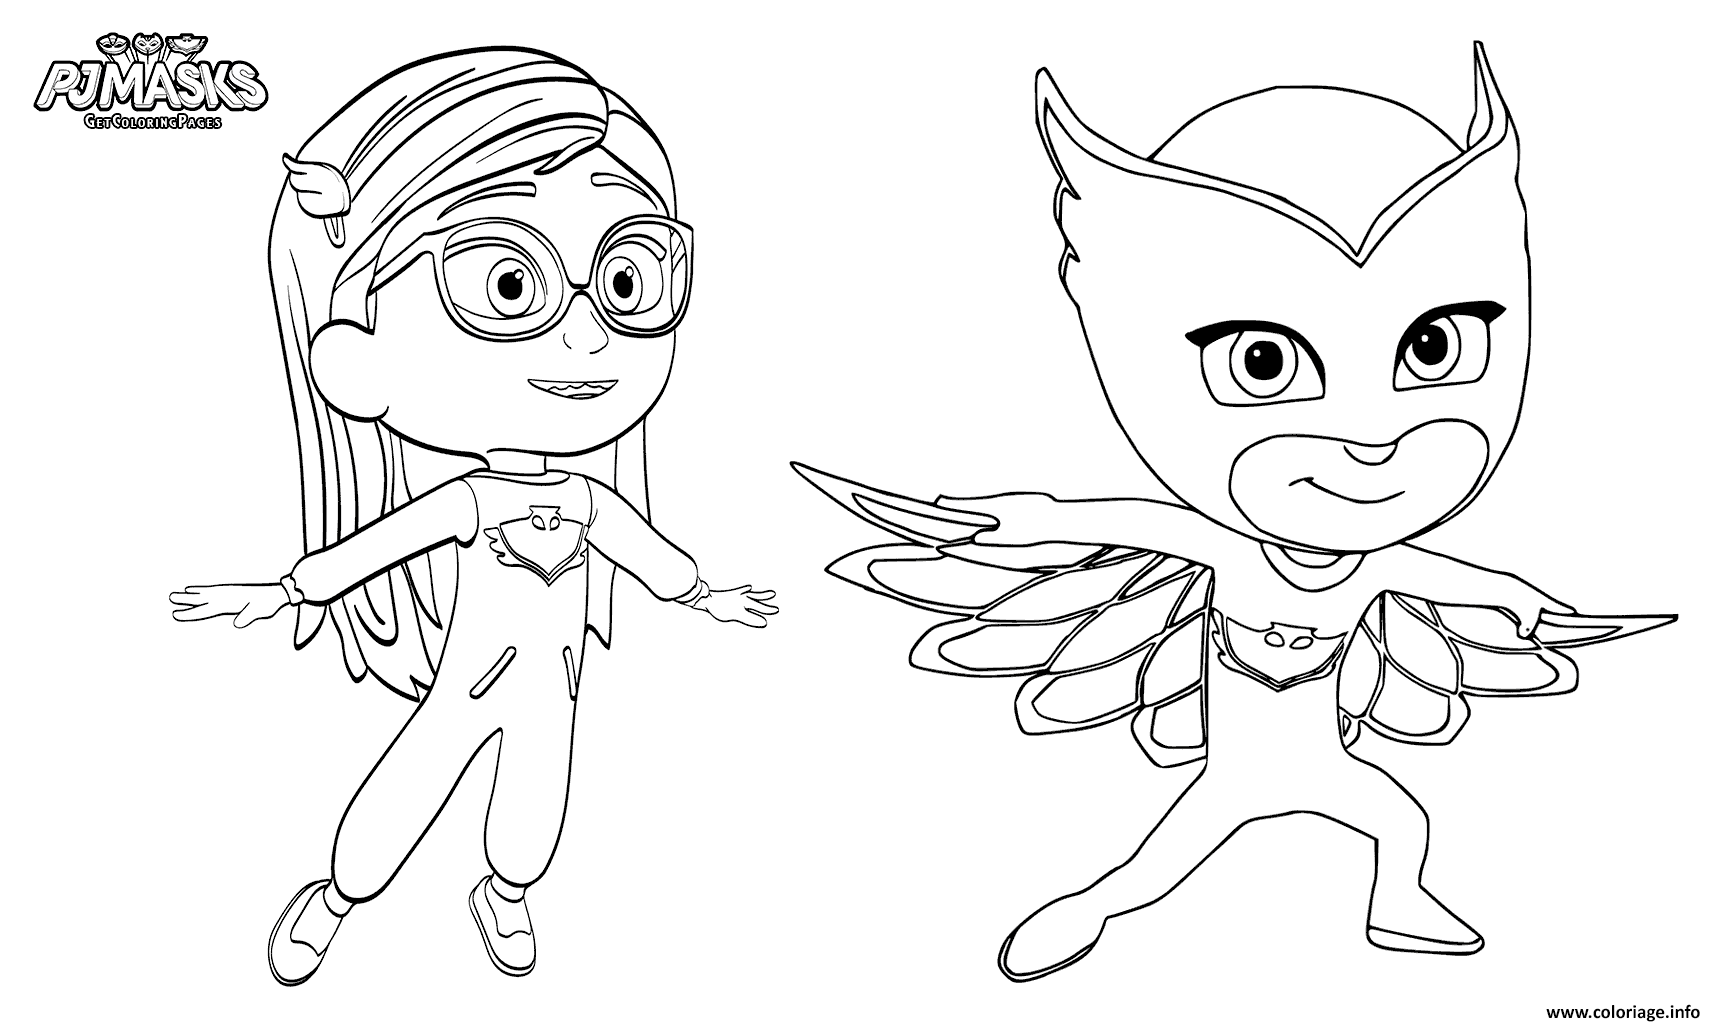 Coloriage Pajama Hero Amaya Is Owlette De Pyjamasques Dessin à Imprimer